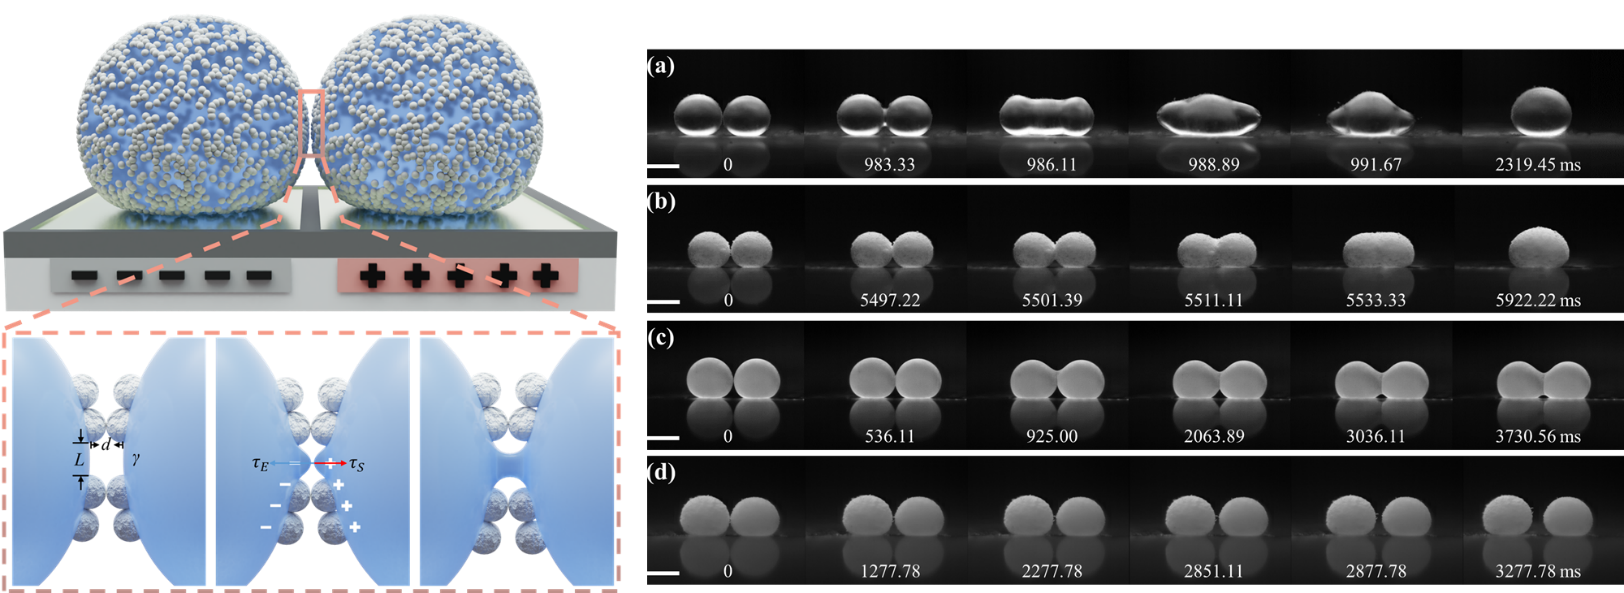 A study of Electro-coalescence of Non-wetting Droplets and Their Application